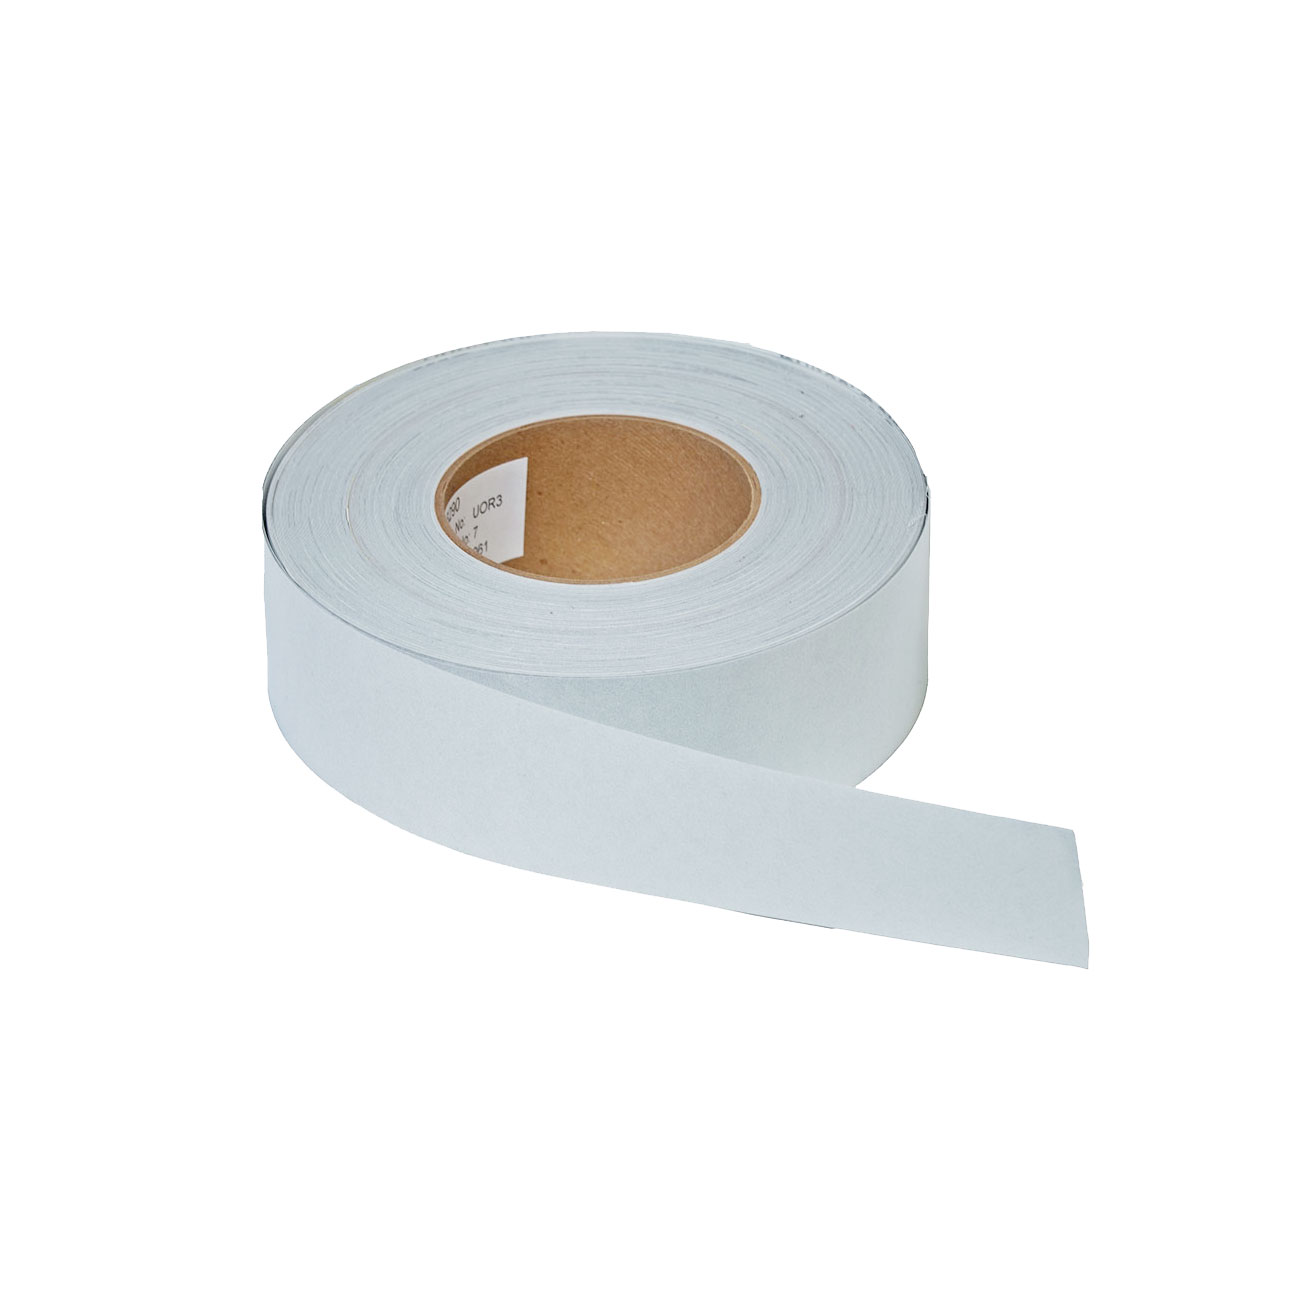 White Reflective Tape Roll for Ambutech Canes- 50 Yards x 2 Inches